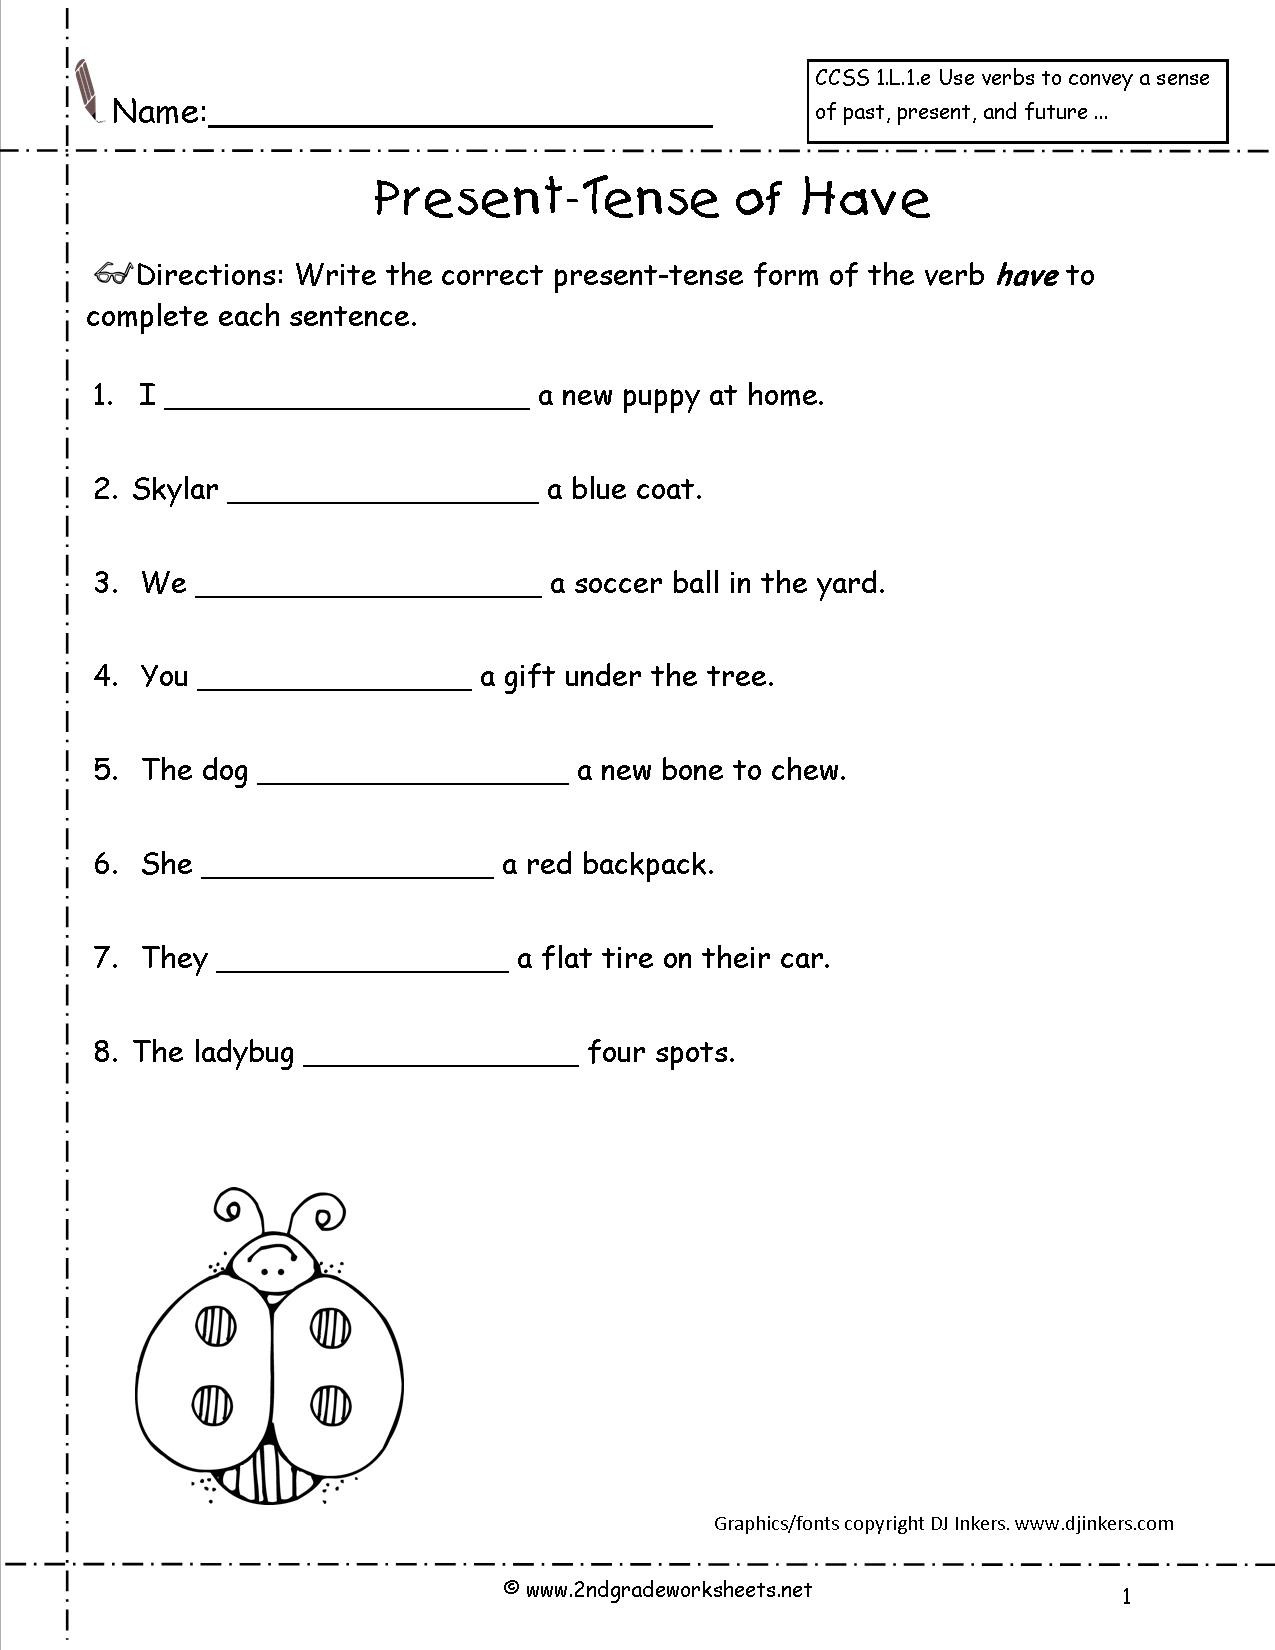 Verb Tense Worksheets 2nd Grade Wonders Second Grade Unit Three Week Four Printouts